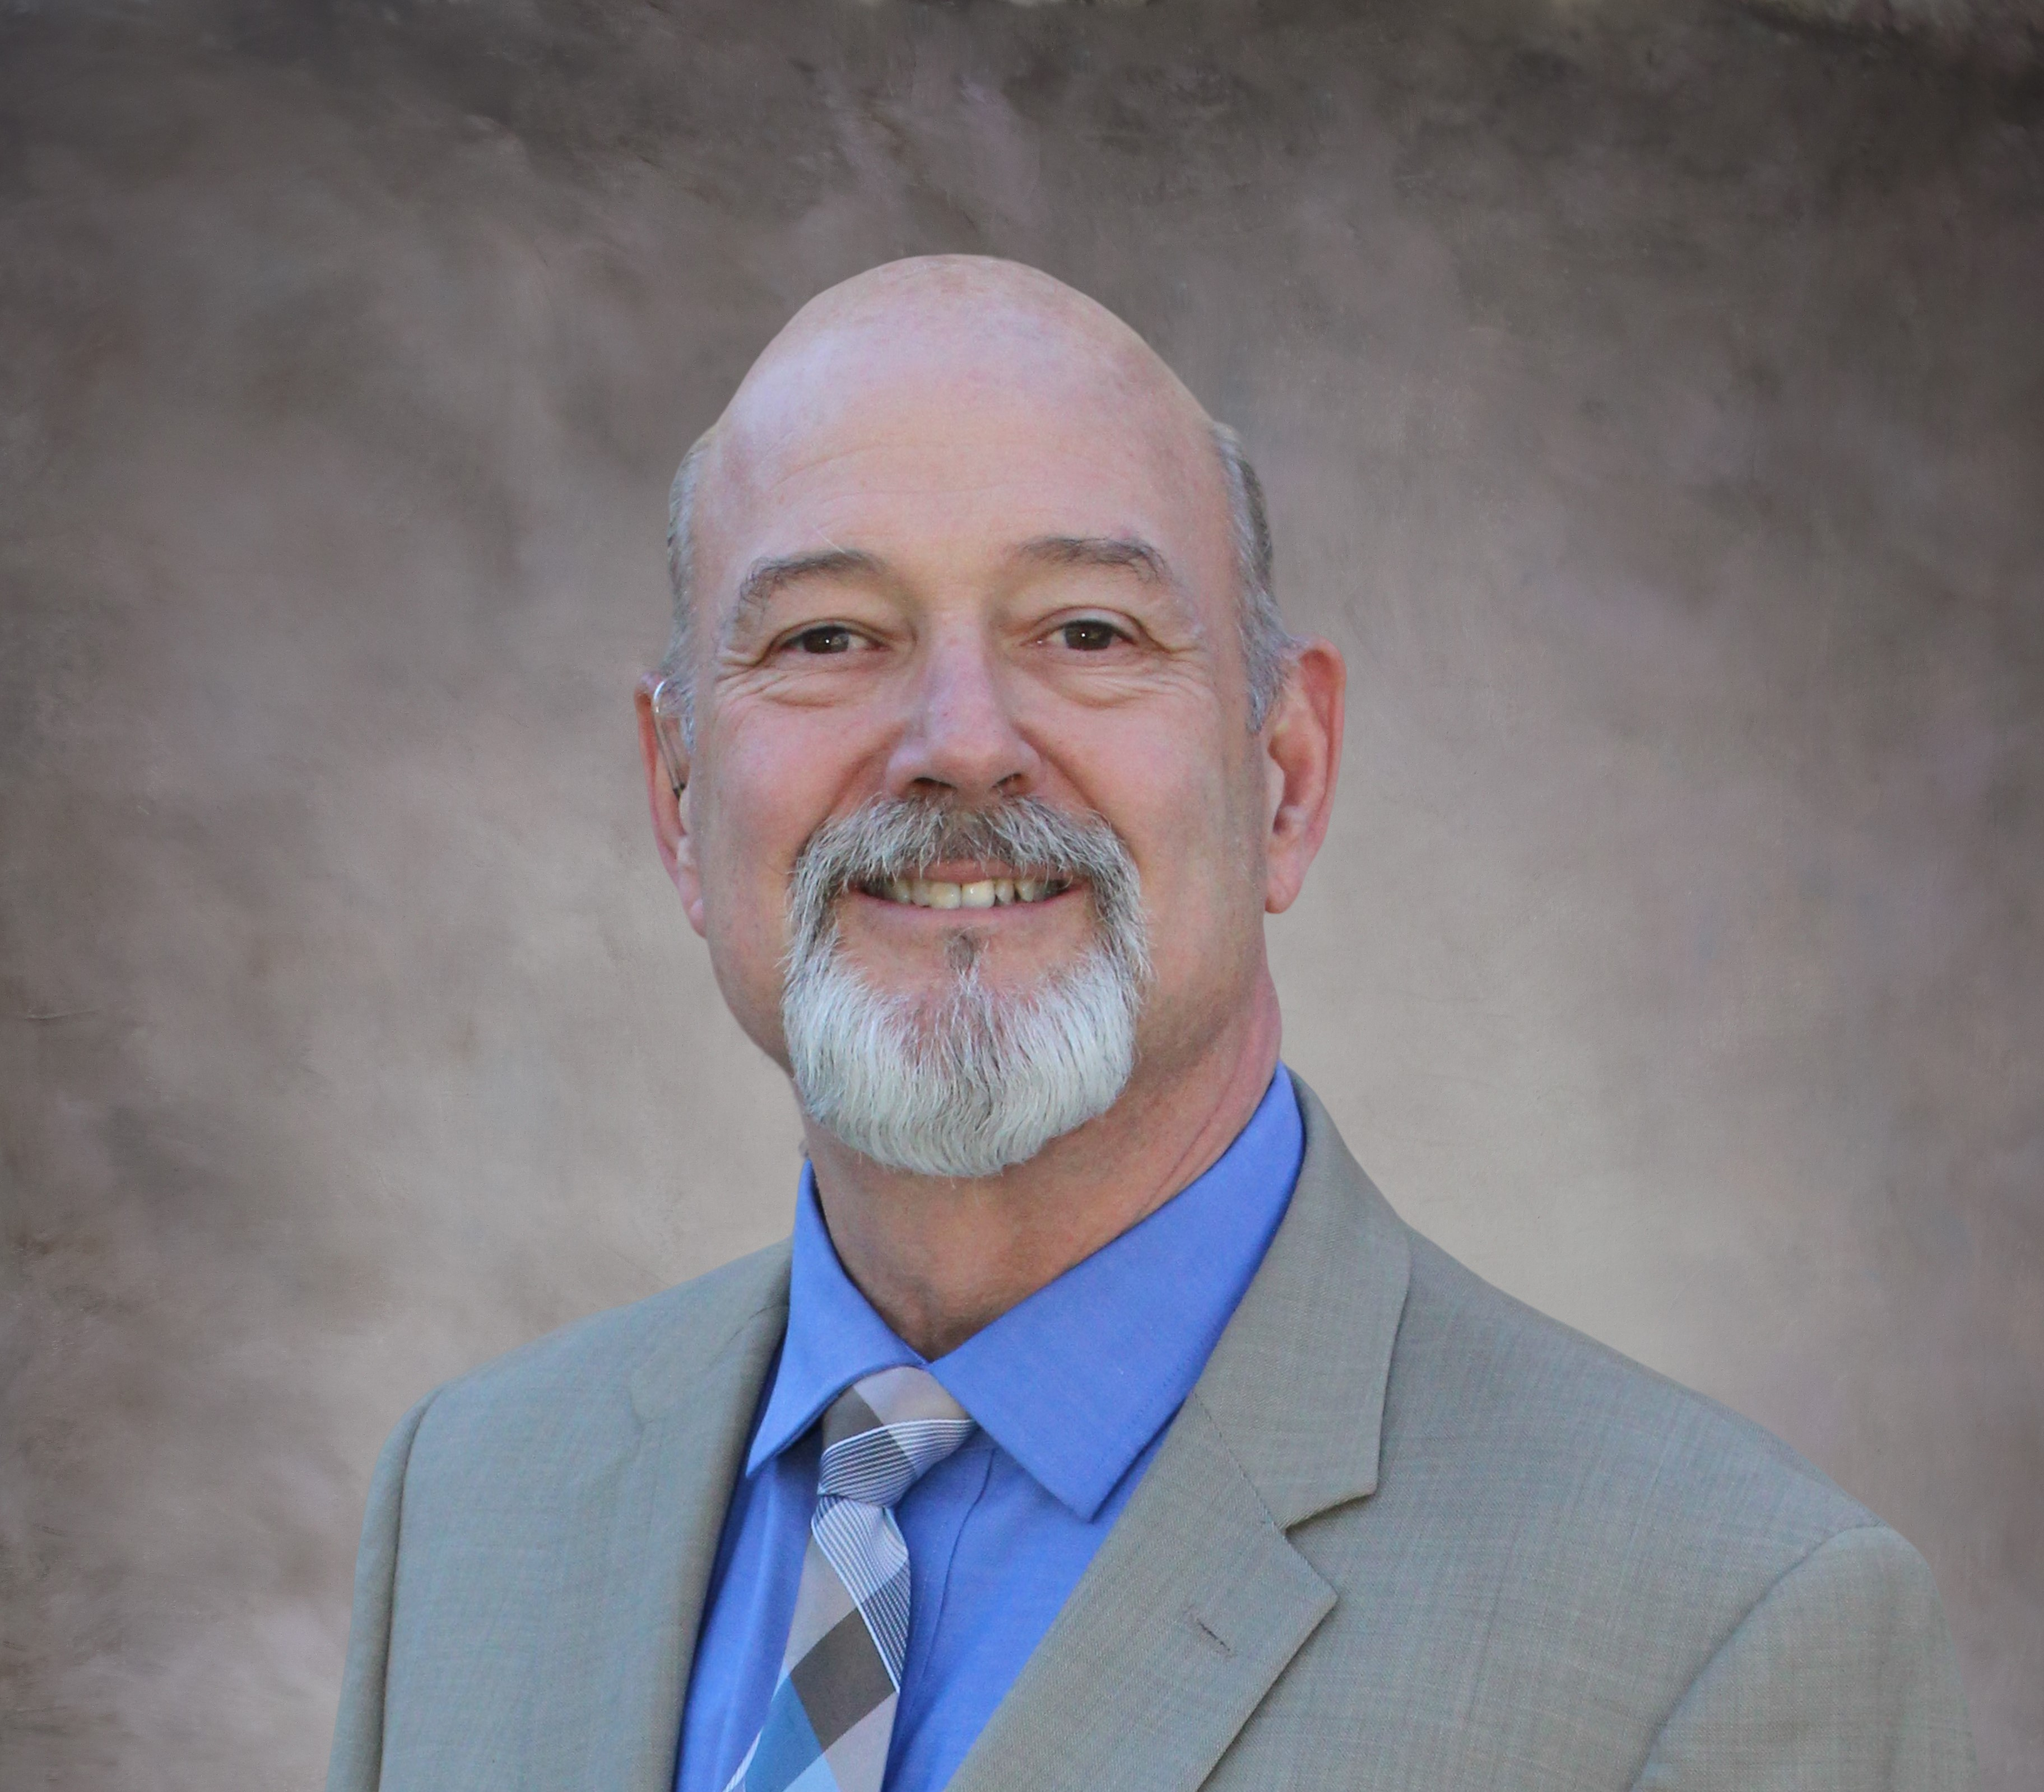 Spotlight on Campus Safety Director of the Year Finalist Glen Wittry